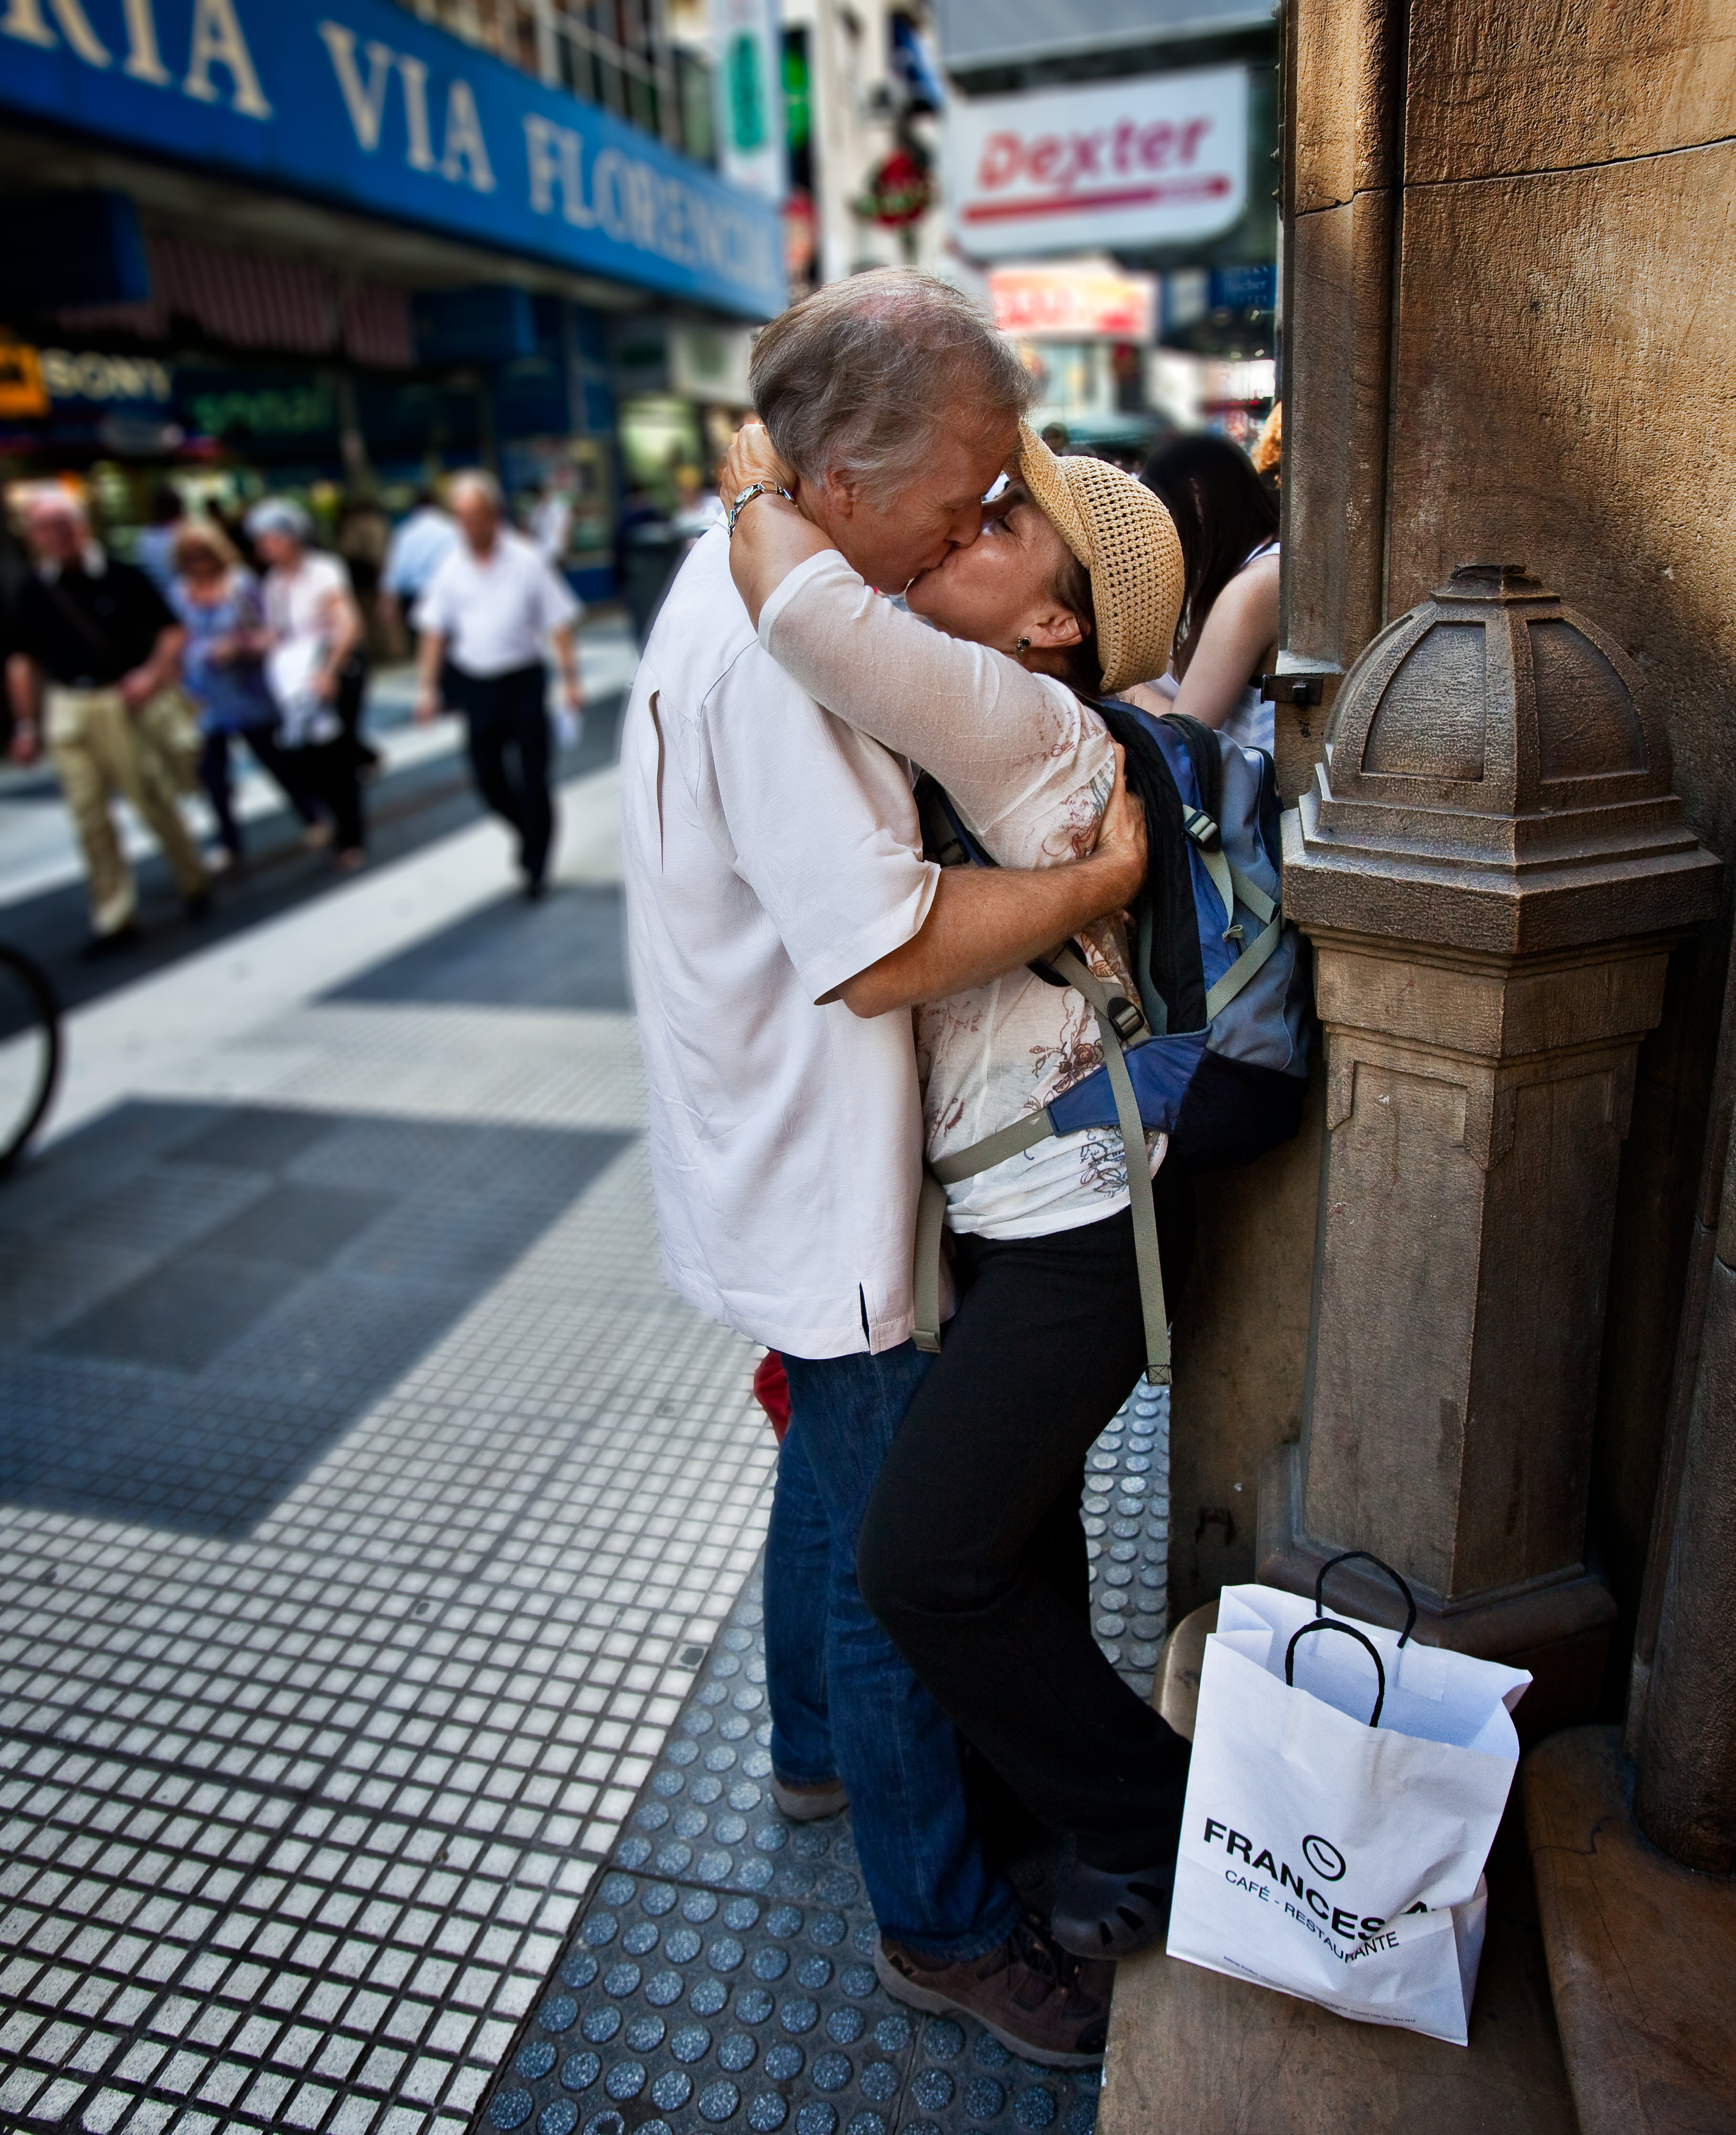 Calle Florida, Buenos Aires, Argentina. Sometimes you just have to lock lips and forget about the crowds around you.